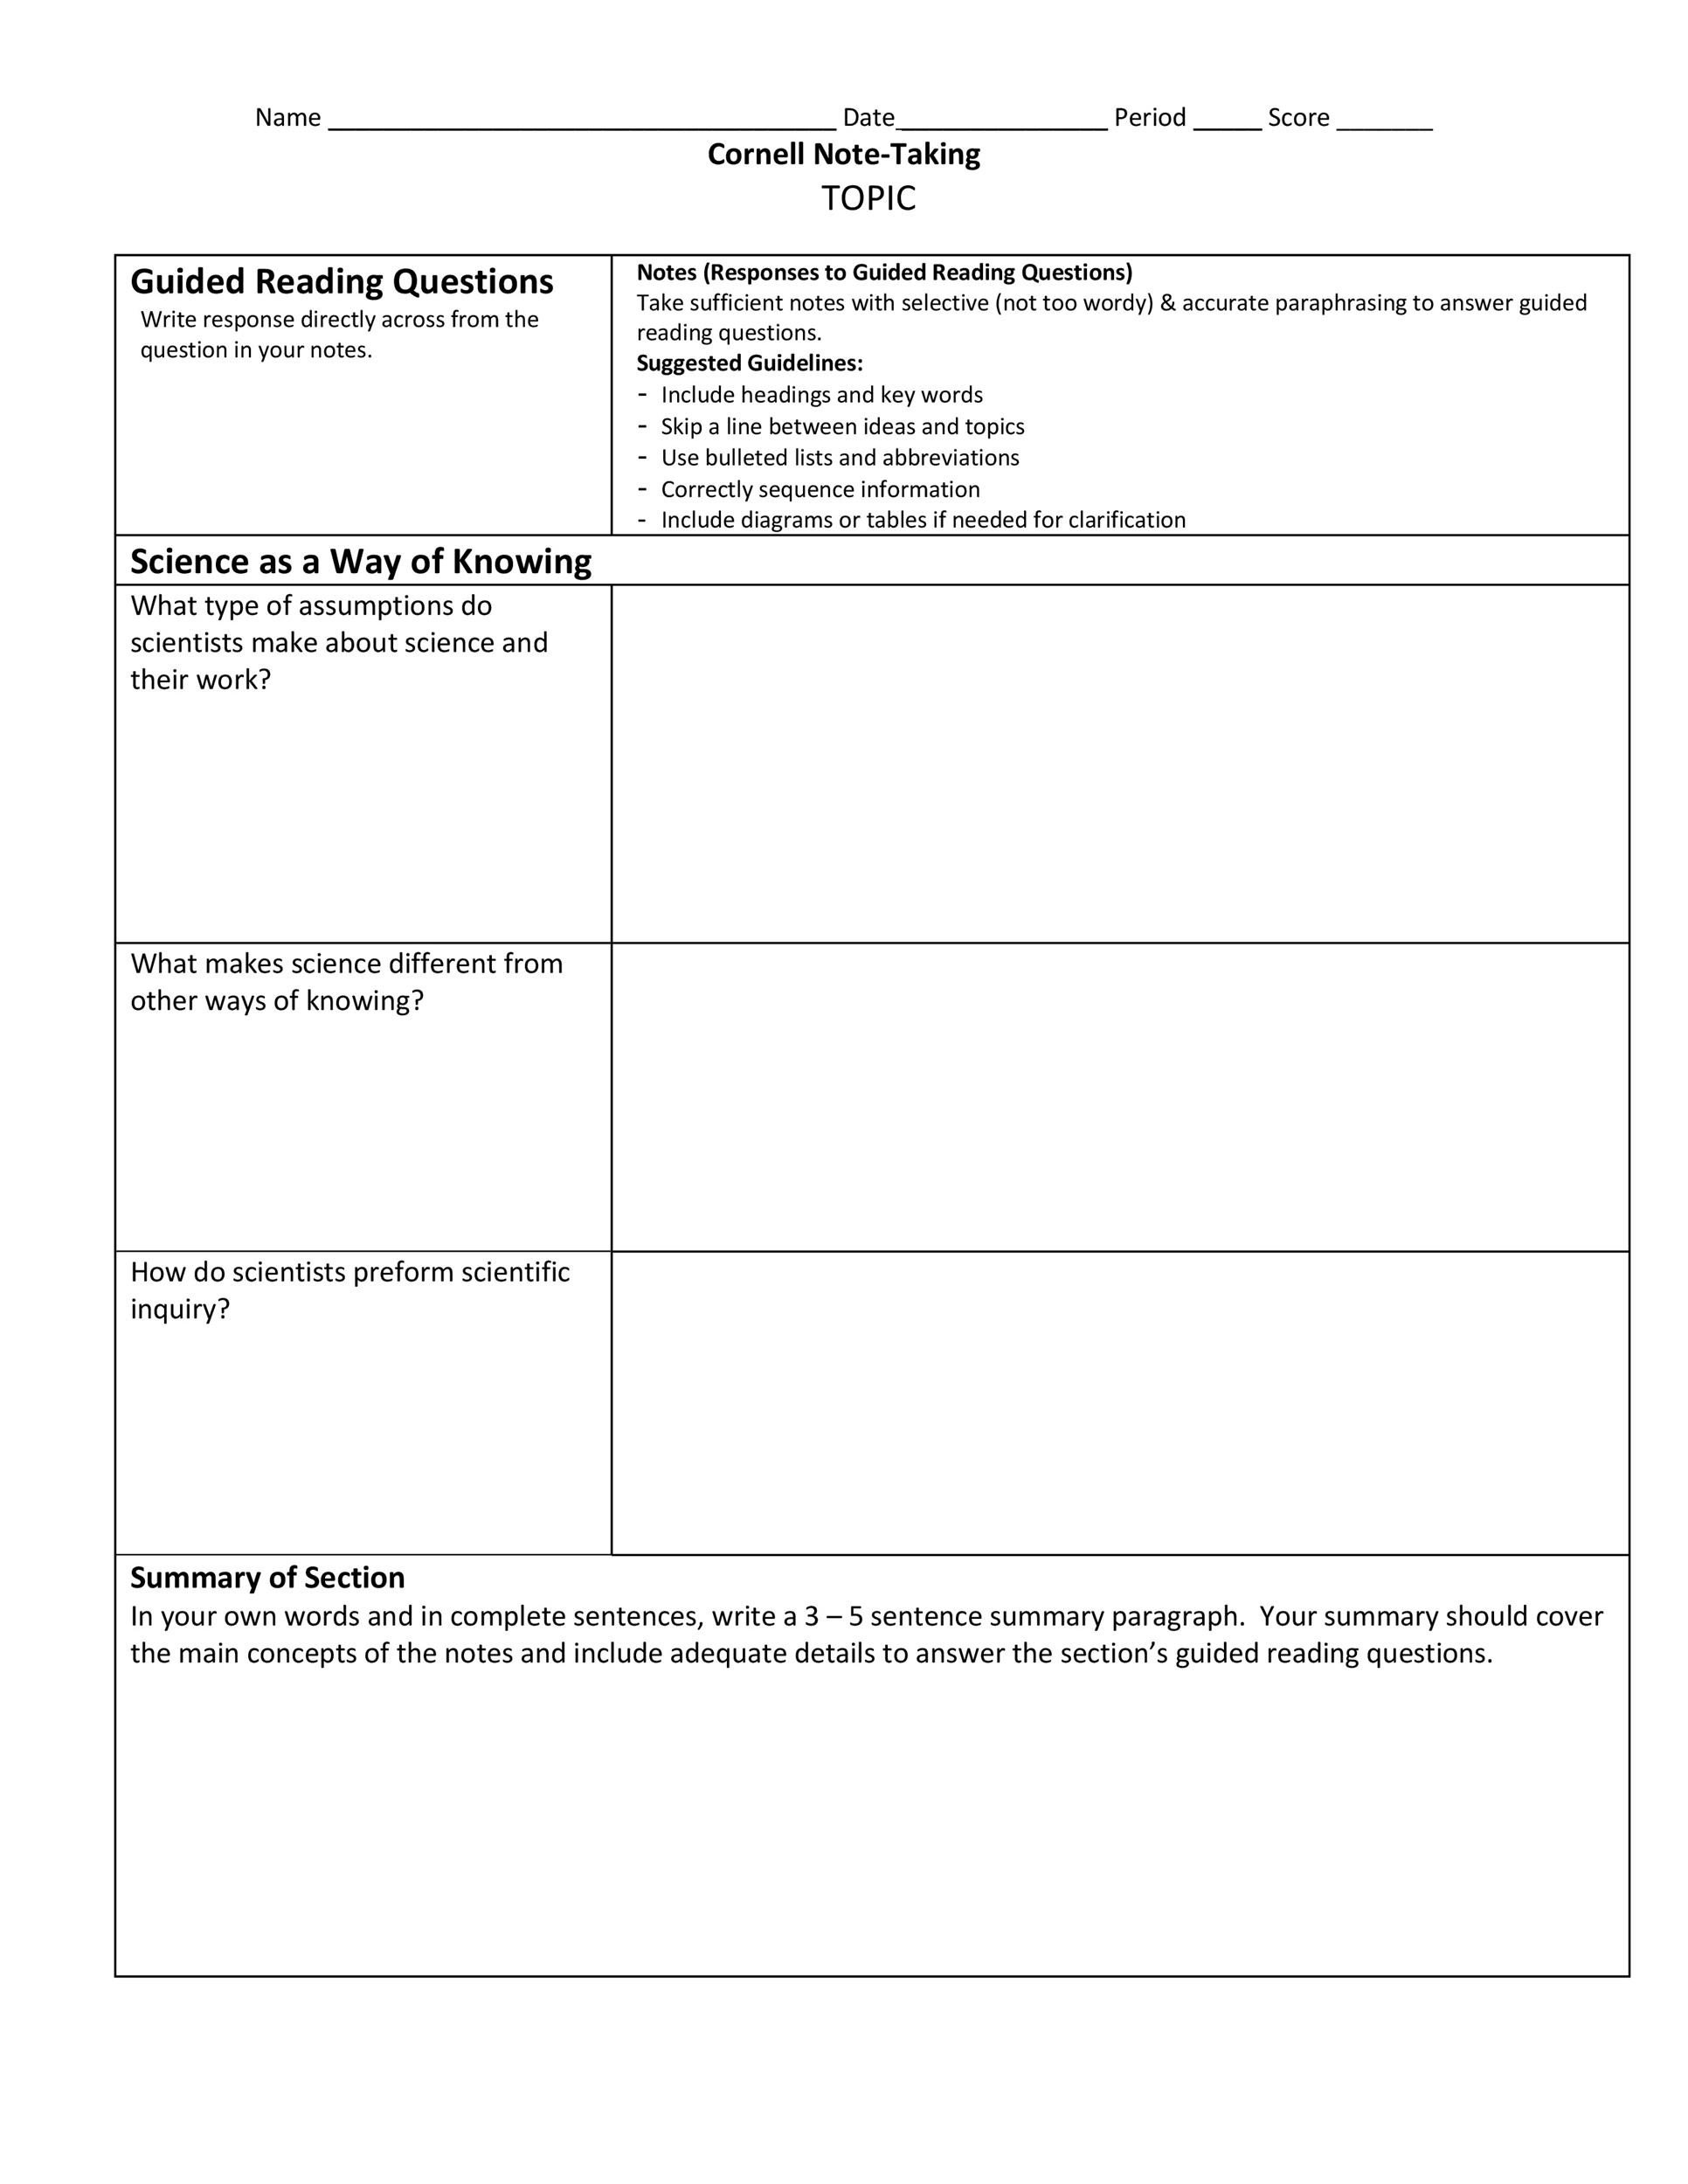 Note Taking Practice Worksheets 37 Cornell Notes Templates & Examples [word Excel Pdf]